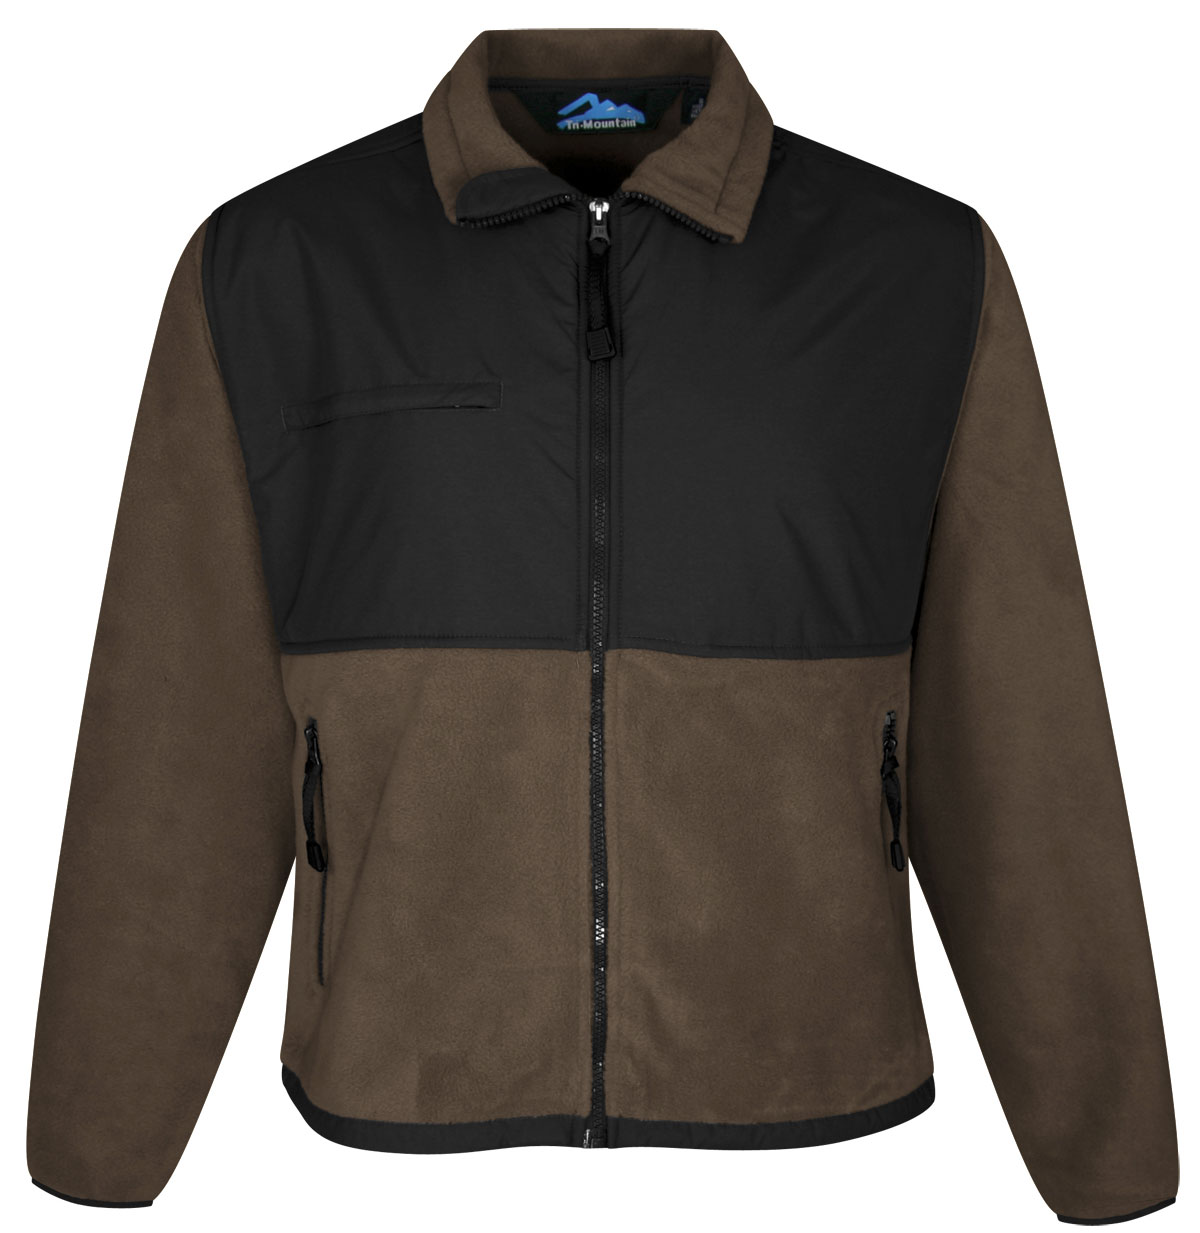 Tri-Mountain Mens Frontiersman Fleece Jacket